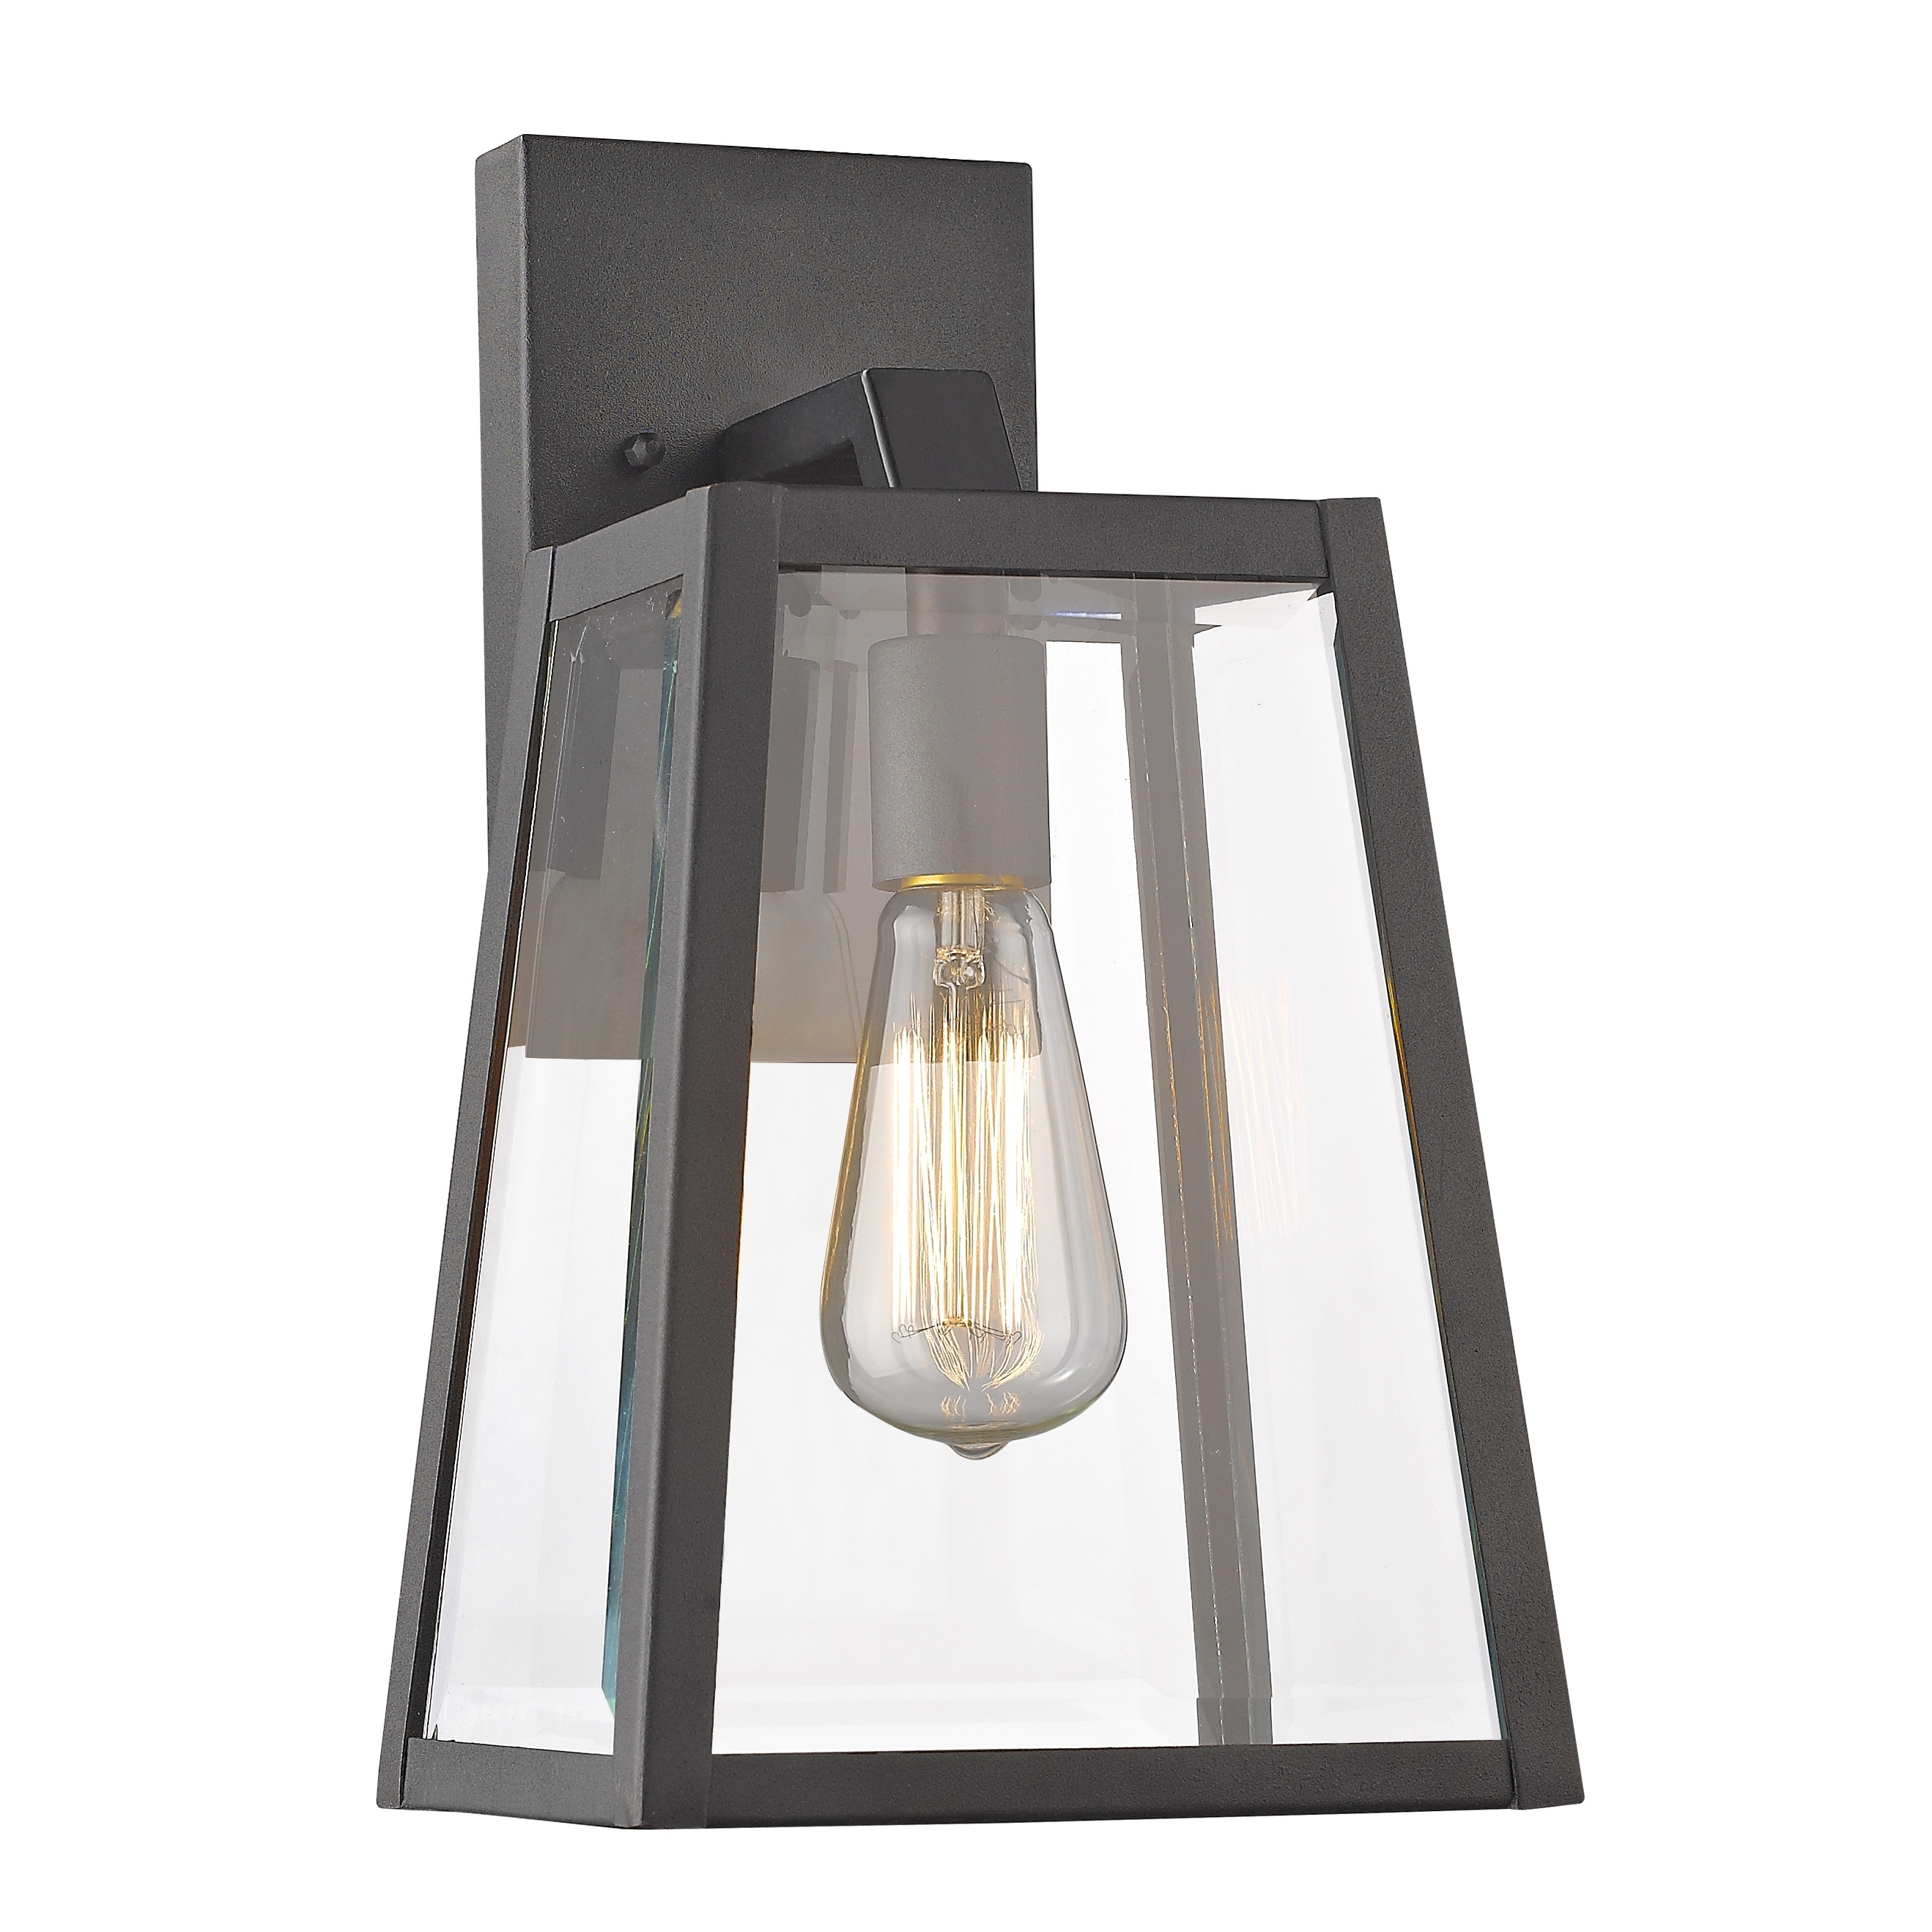 Inspiration about Outdoor Wall Lighting Wayfair 1 Light Sconce ~ Clipgoo Pertaining To Contemporary Rustic Outdoor Lighting At Wayfair (#1 of 15)